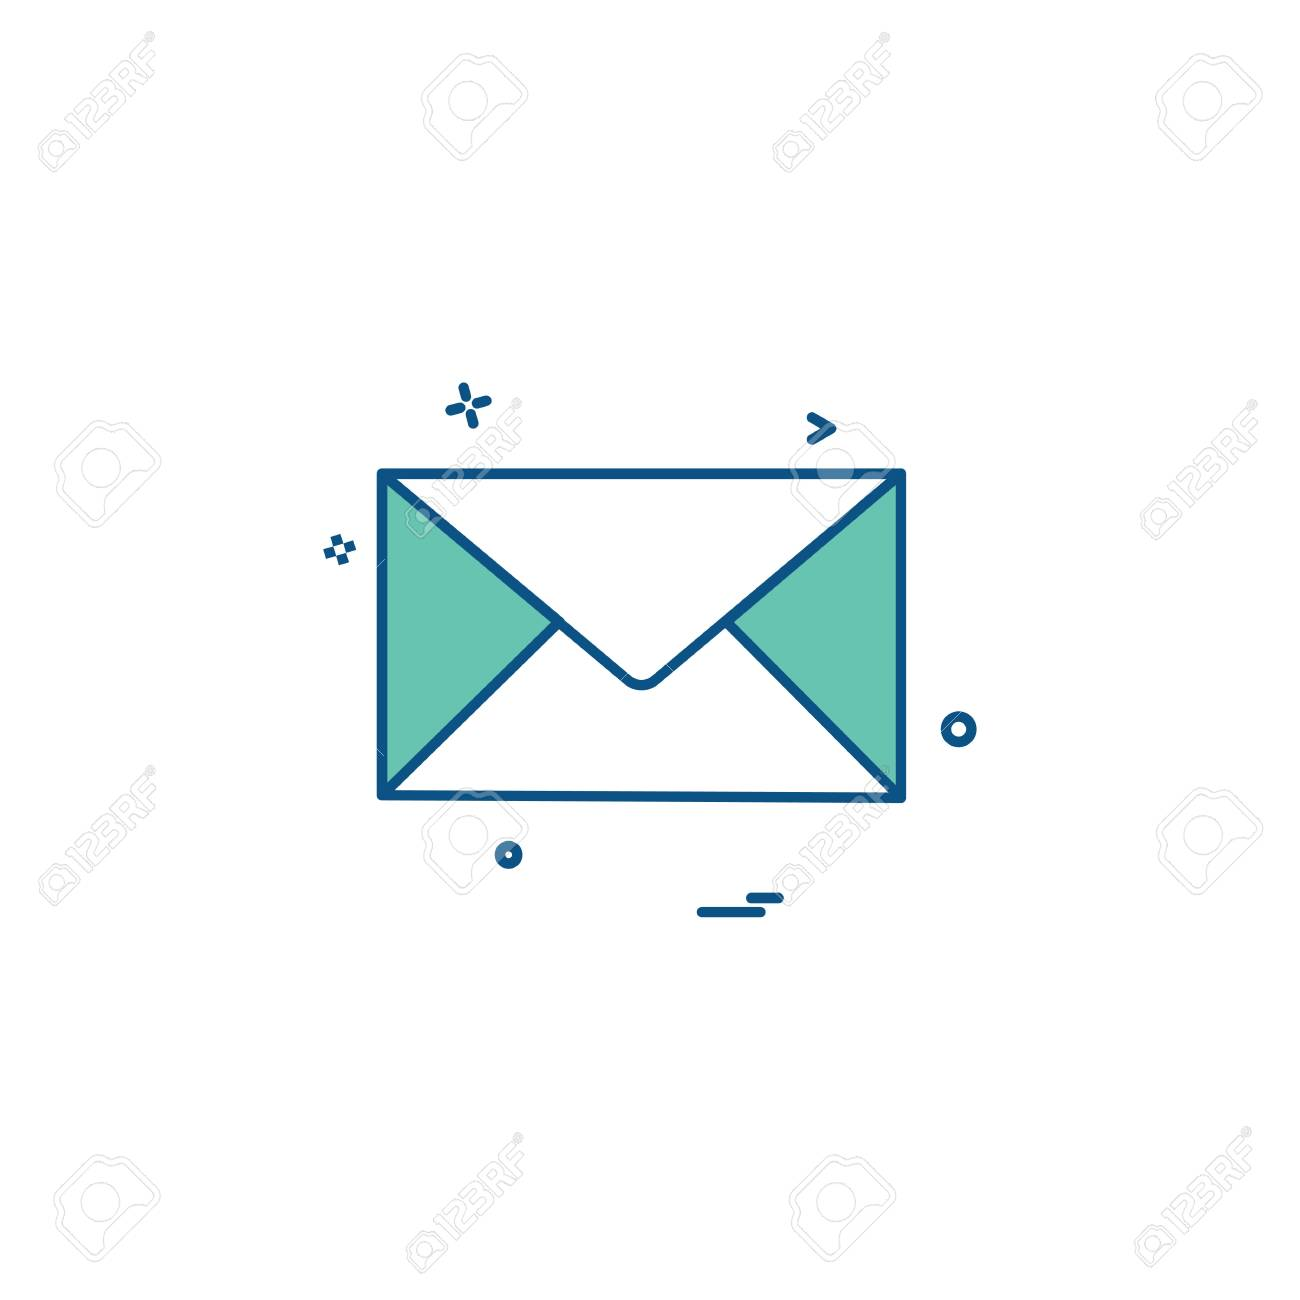 email mail letter icon vector design royalty free cliparts, vectors